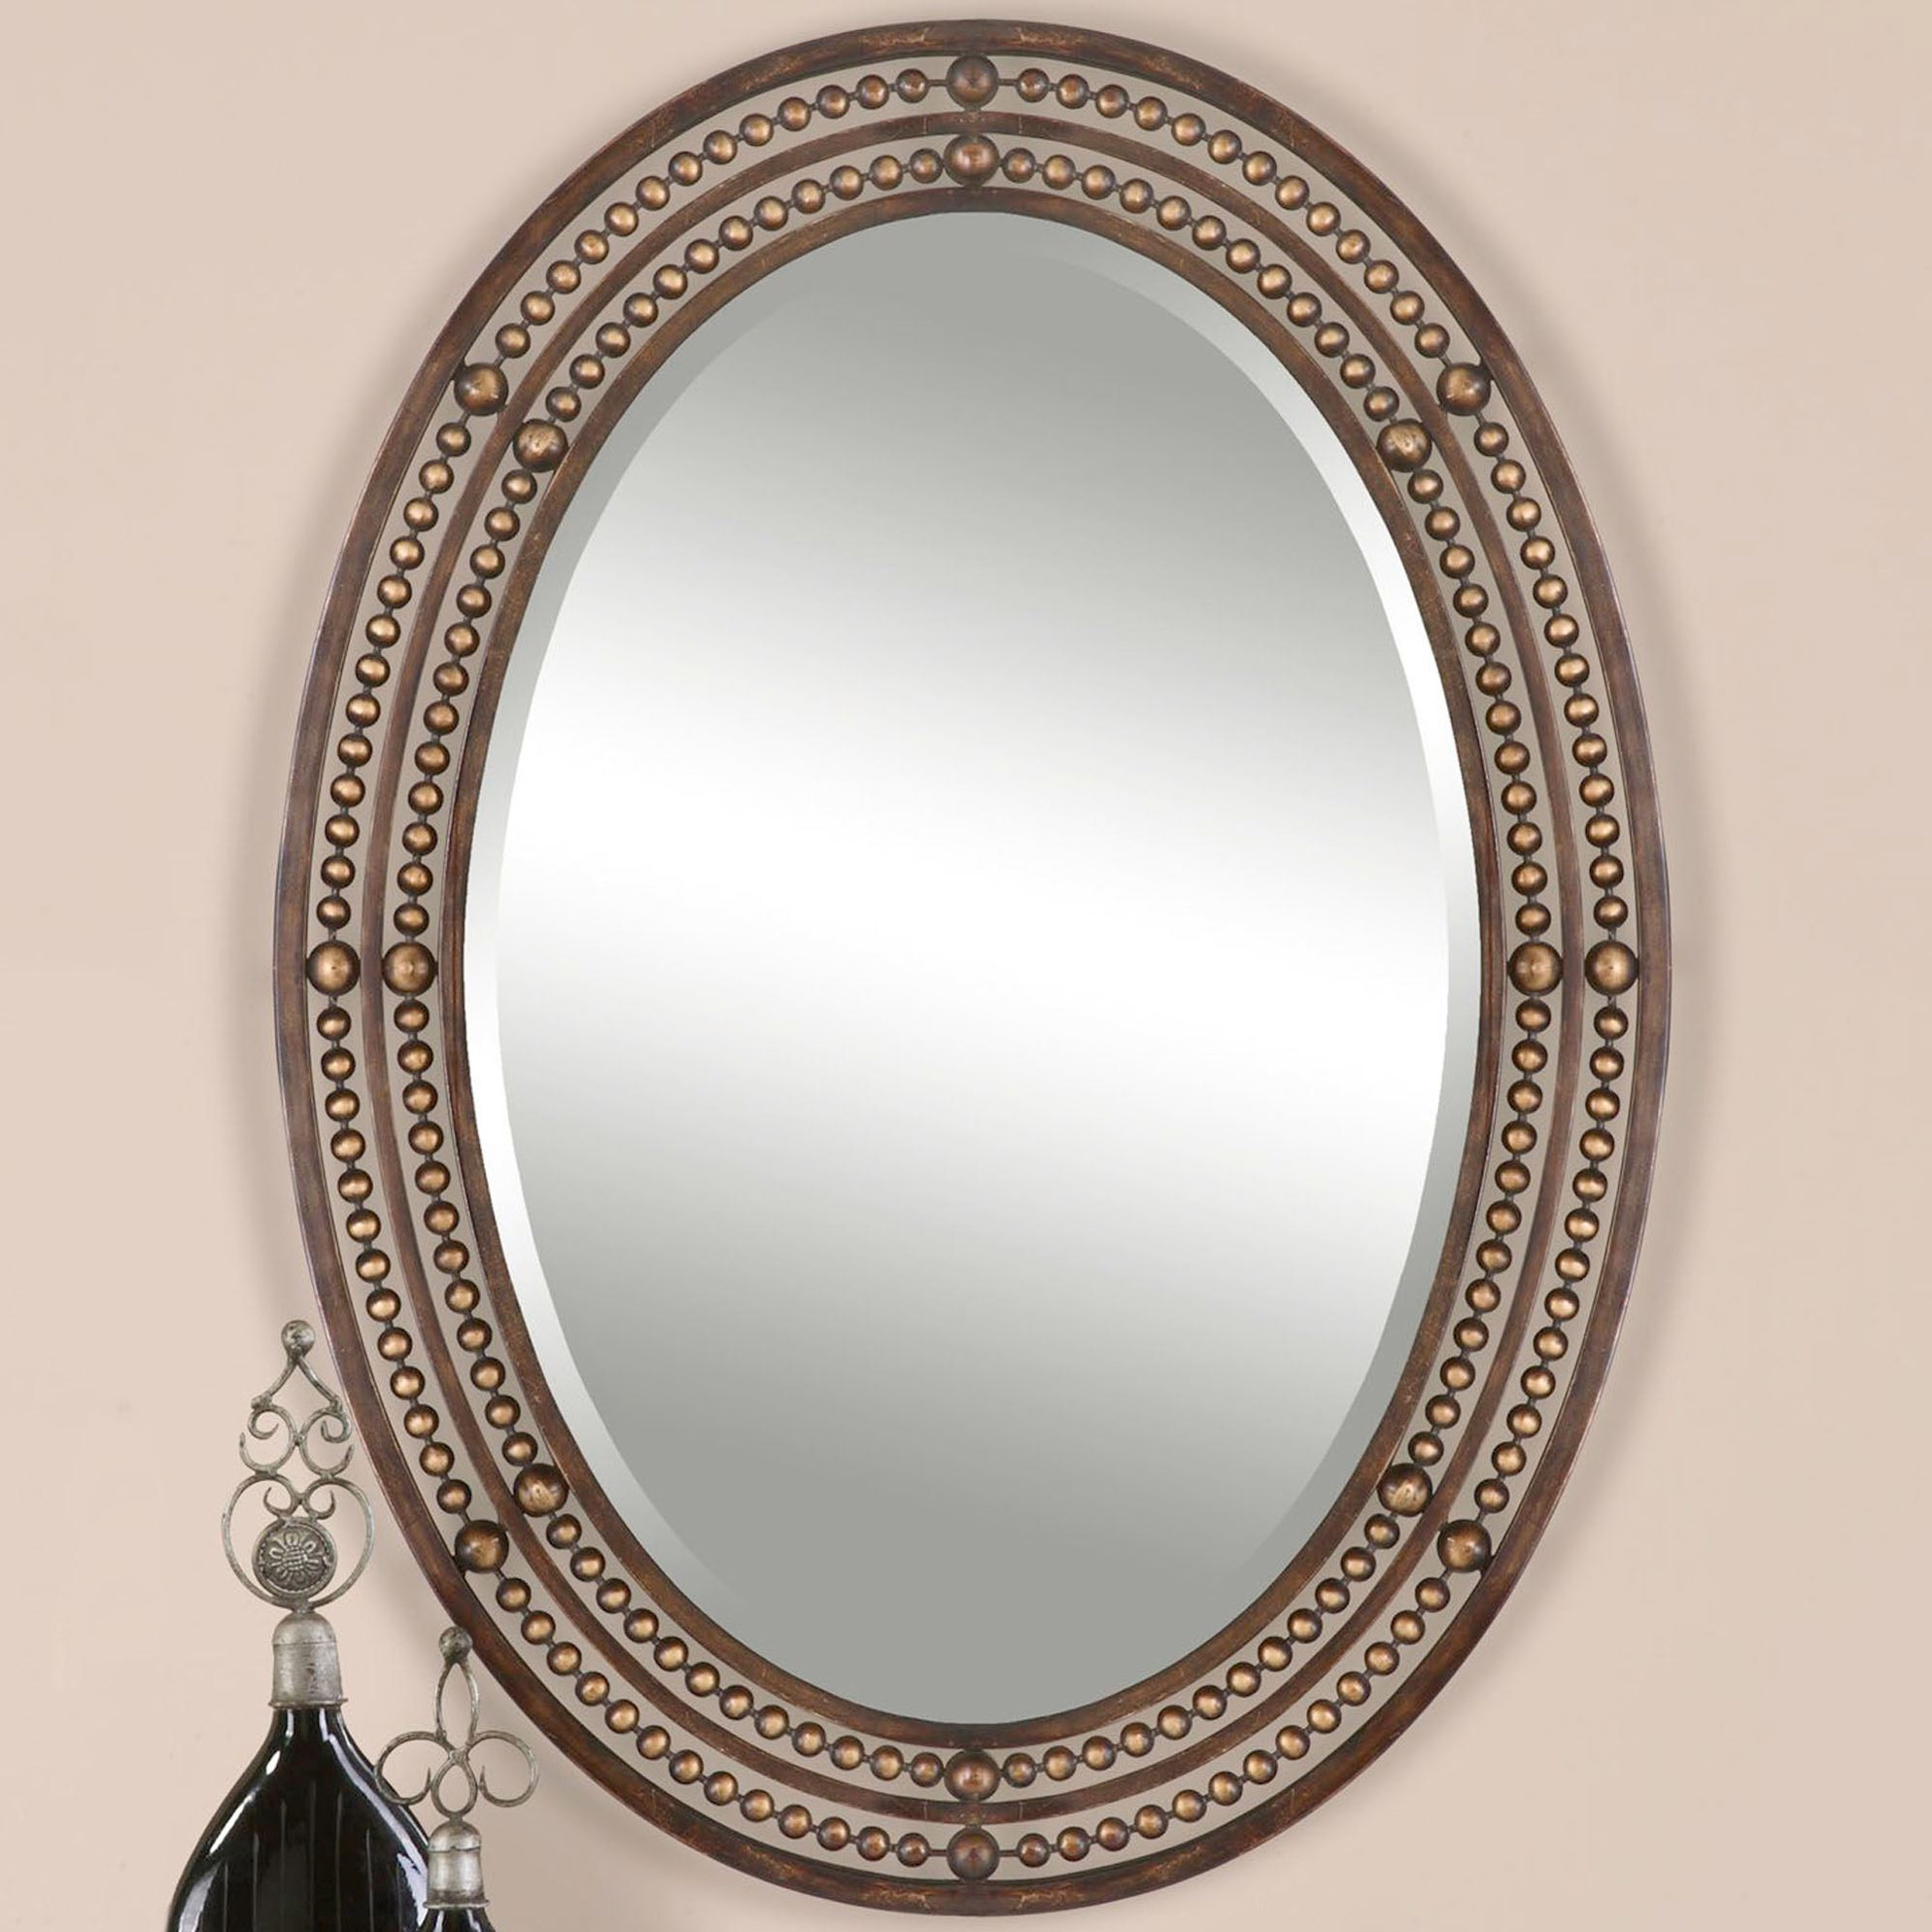 14 best ideas large oval wall mirror mirror ideas large oval wall mirrors courtagerivegauche regarding large oval wall mirror image 11 of 14 amipublicfo Choice Image